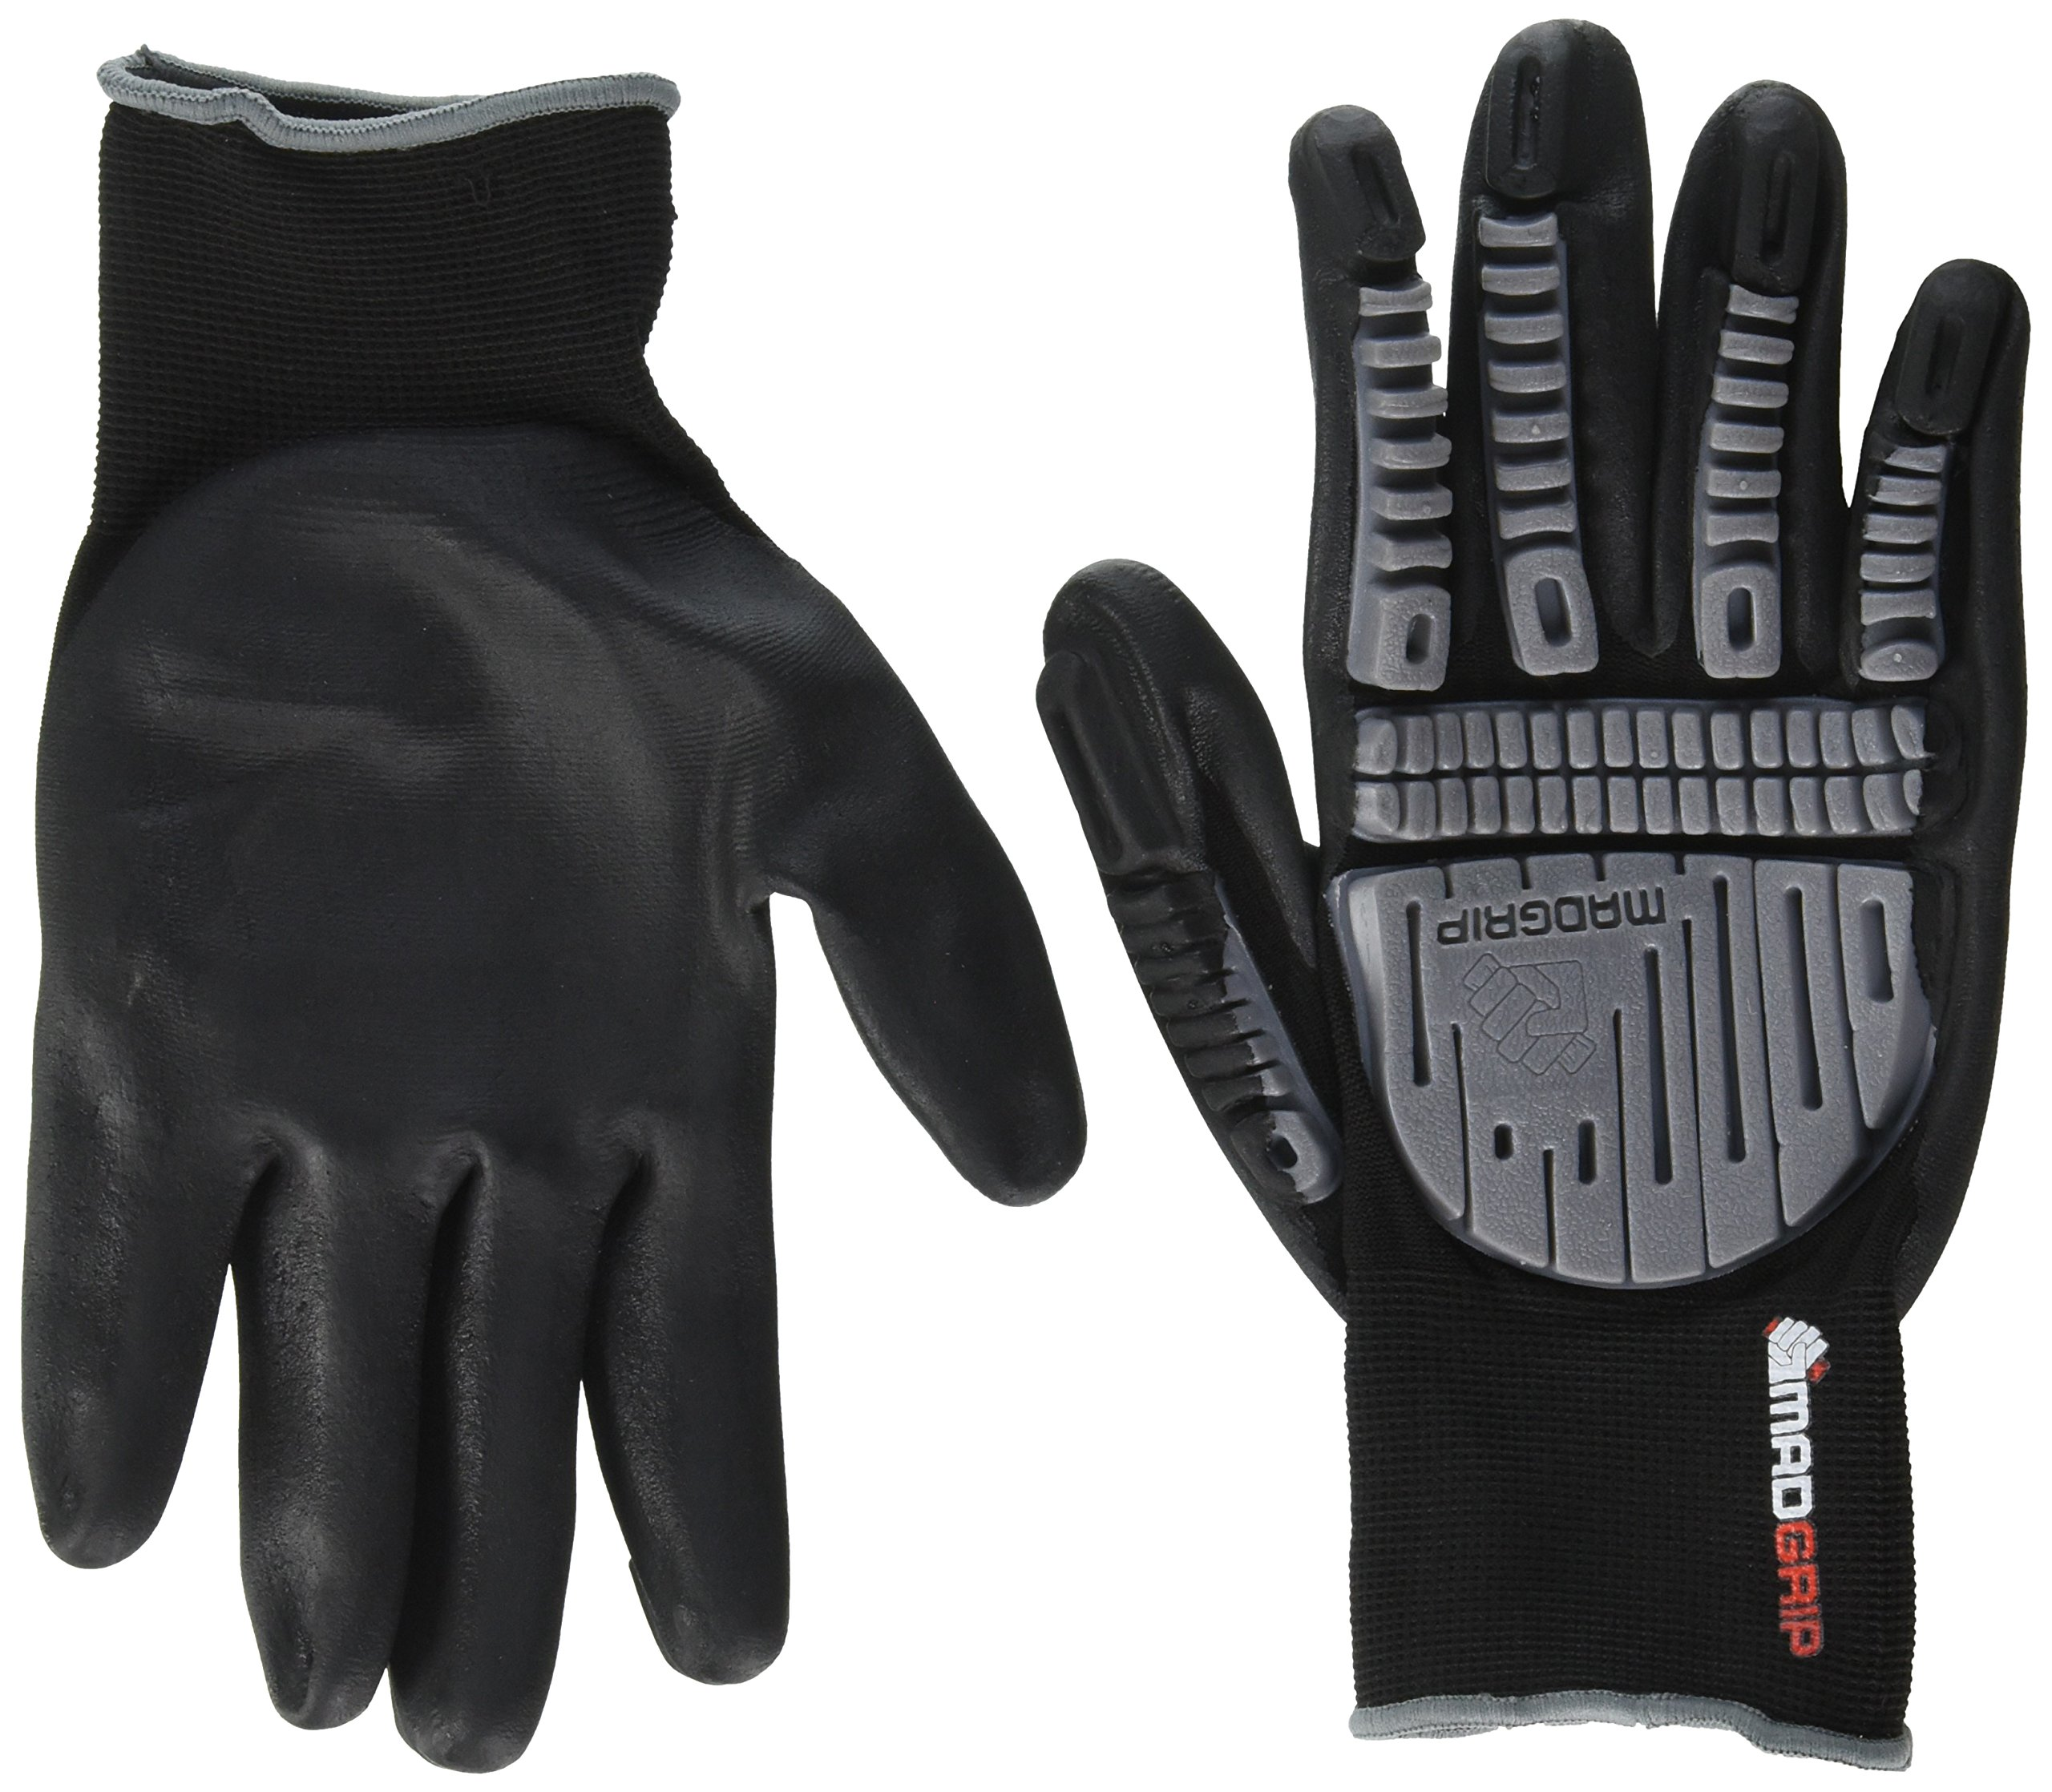 MadGrip Ergo Defender Impact Foam Nitrile Palm Glove by Mad Grip (Image #1)